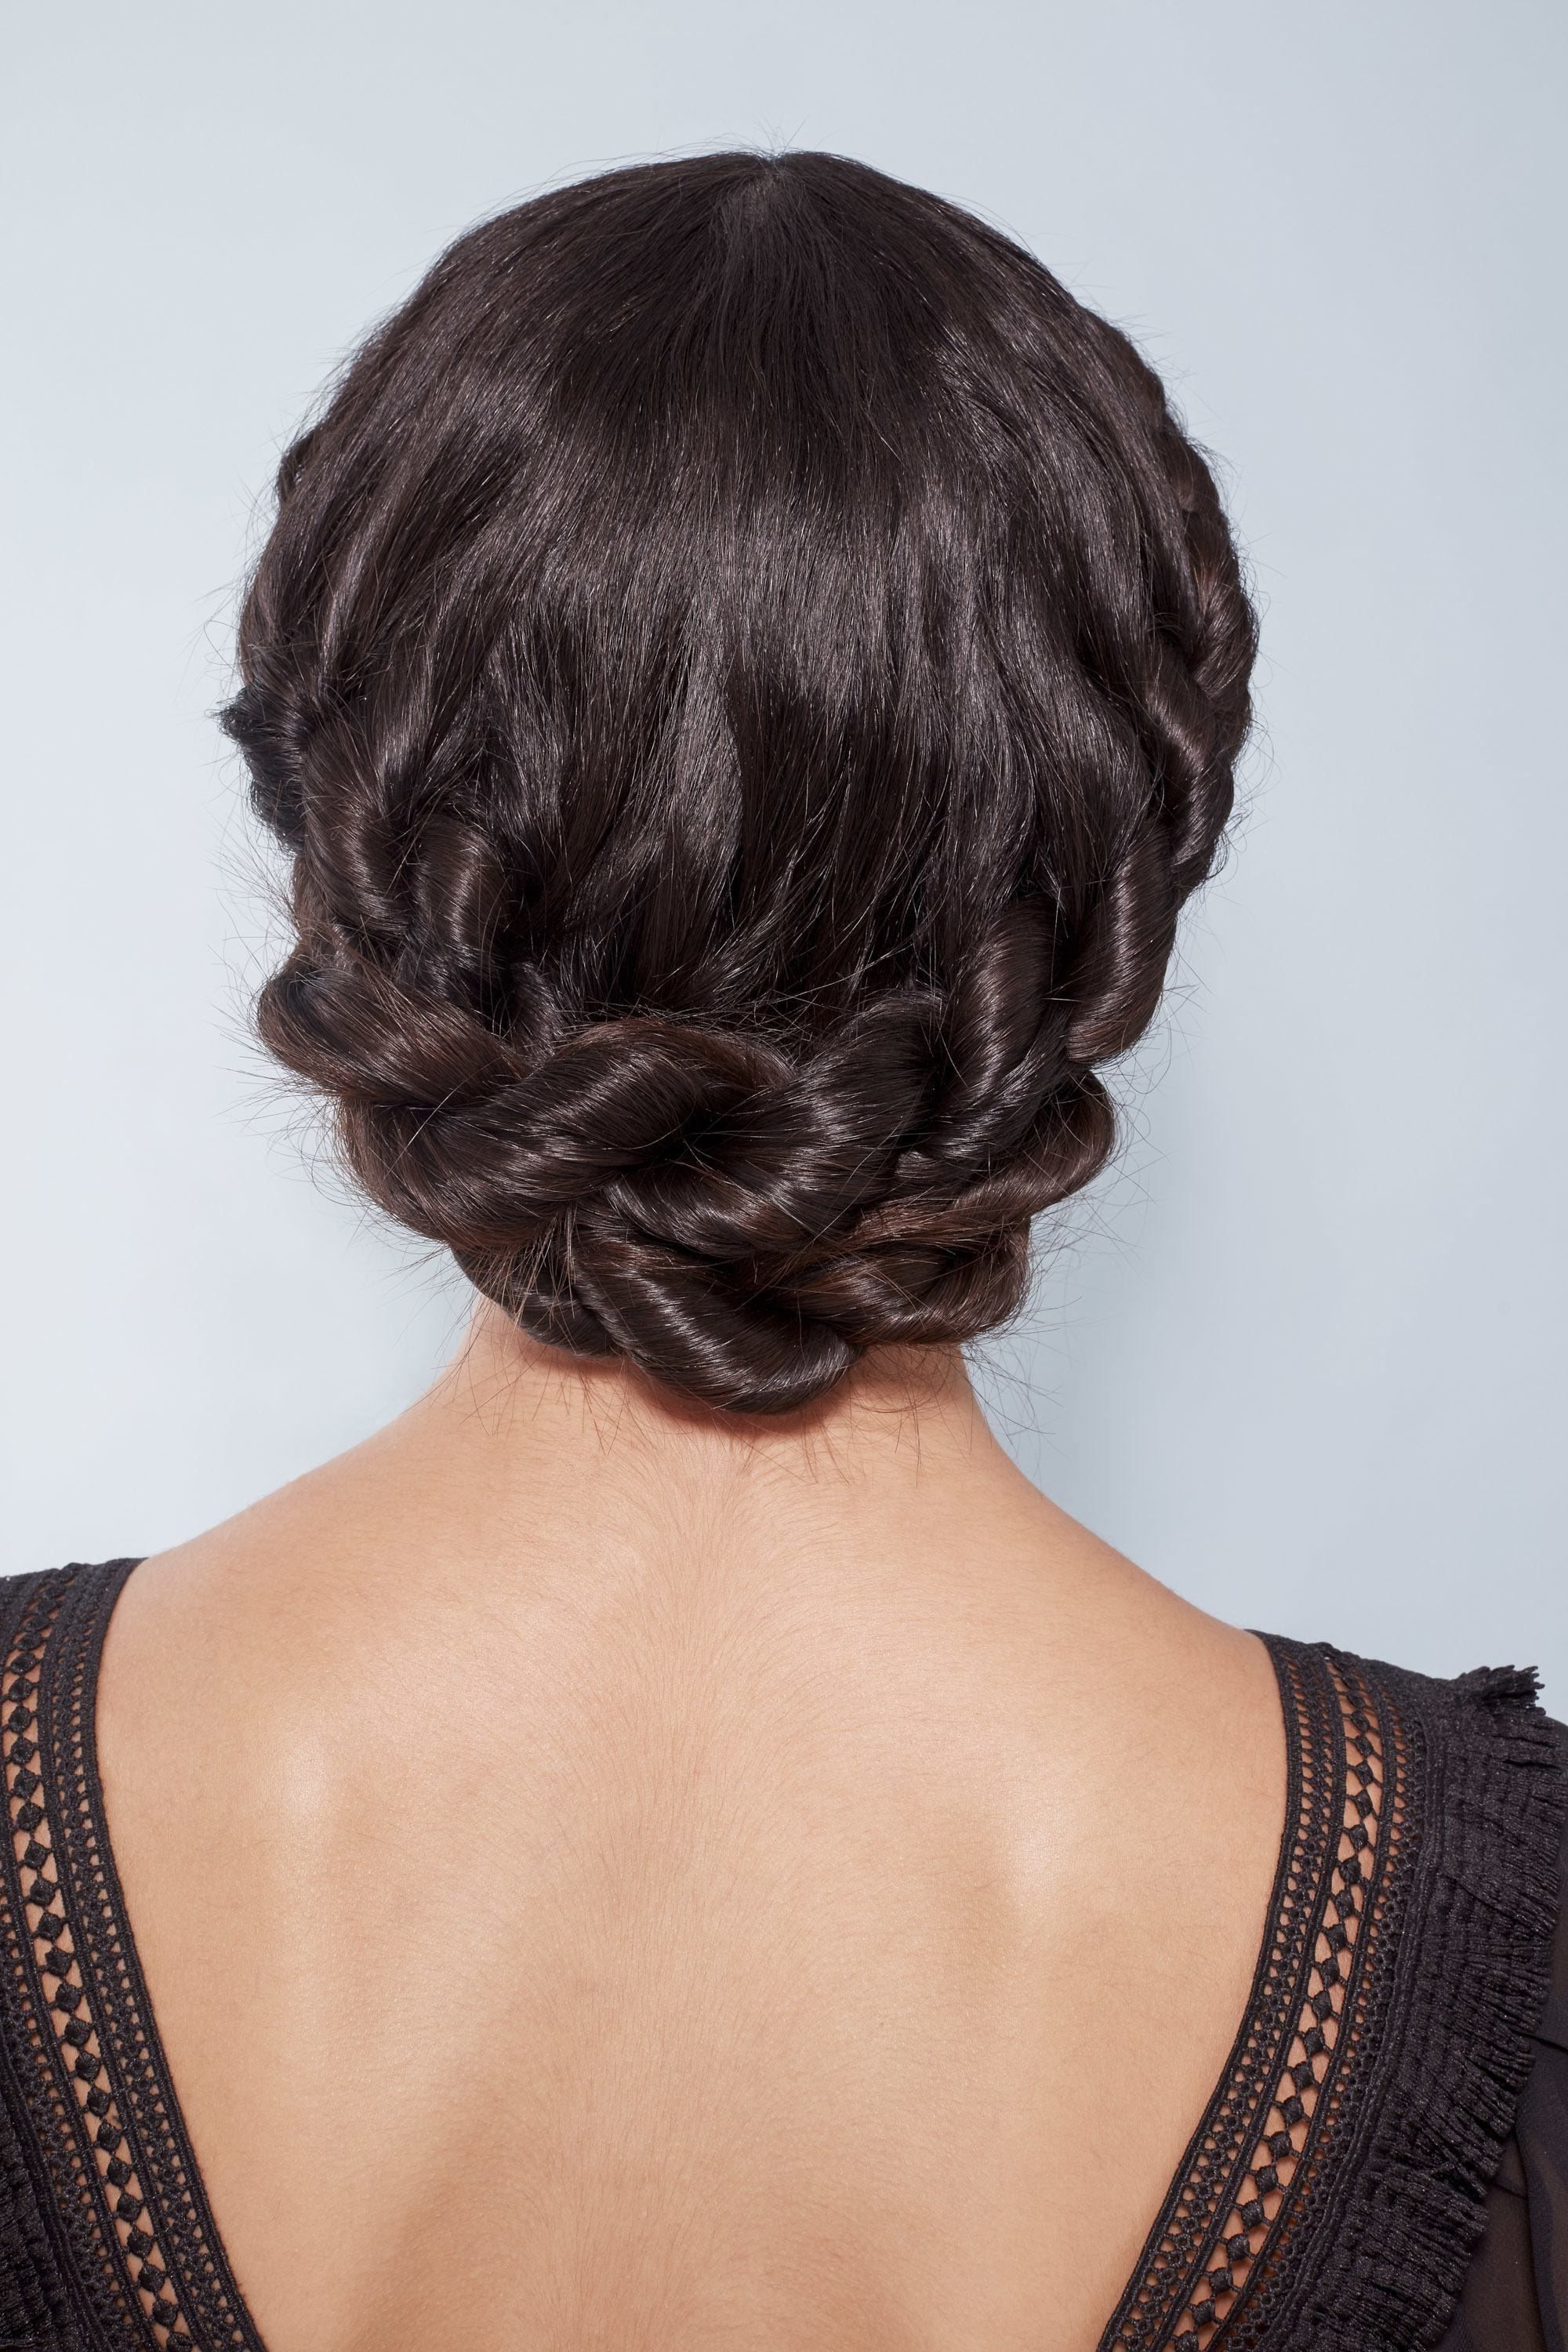 Fashionable Pinned Brunette Ribbons Bridal Hairstyles With 25 Wedding Guest Hairstyles That'll Make You The Chicest Attendee (View 10 of 20)